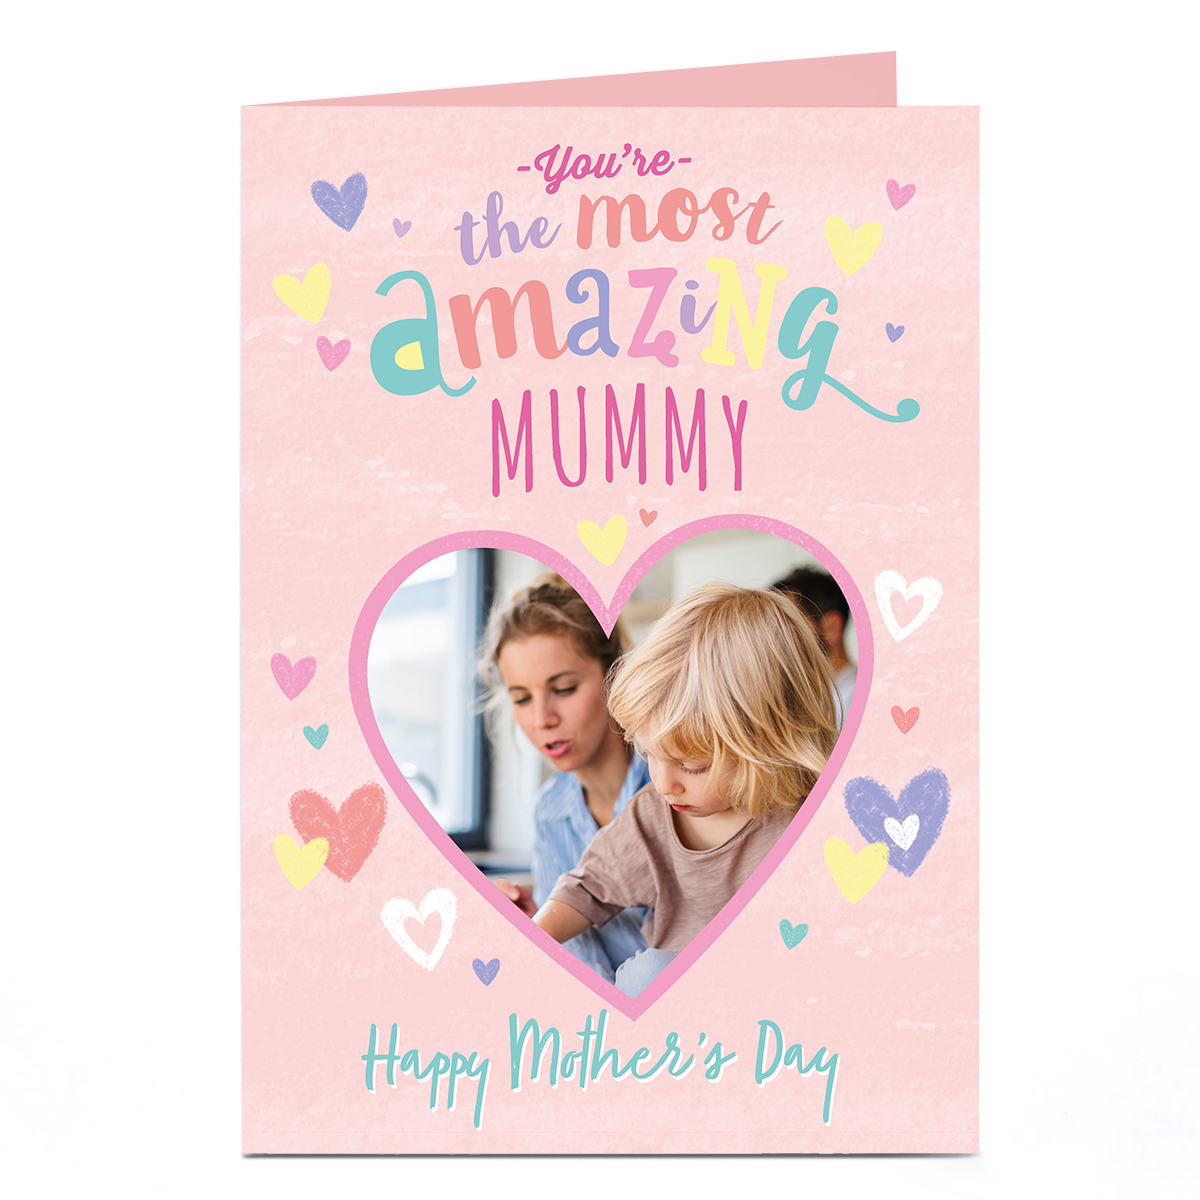 Personalised Mother's Day Photo Card - You're the most Amazing